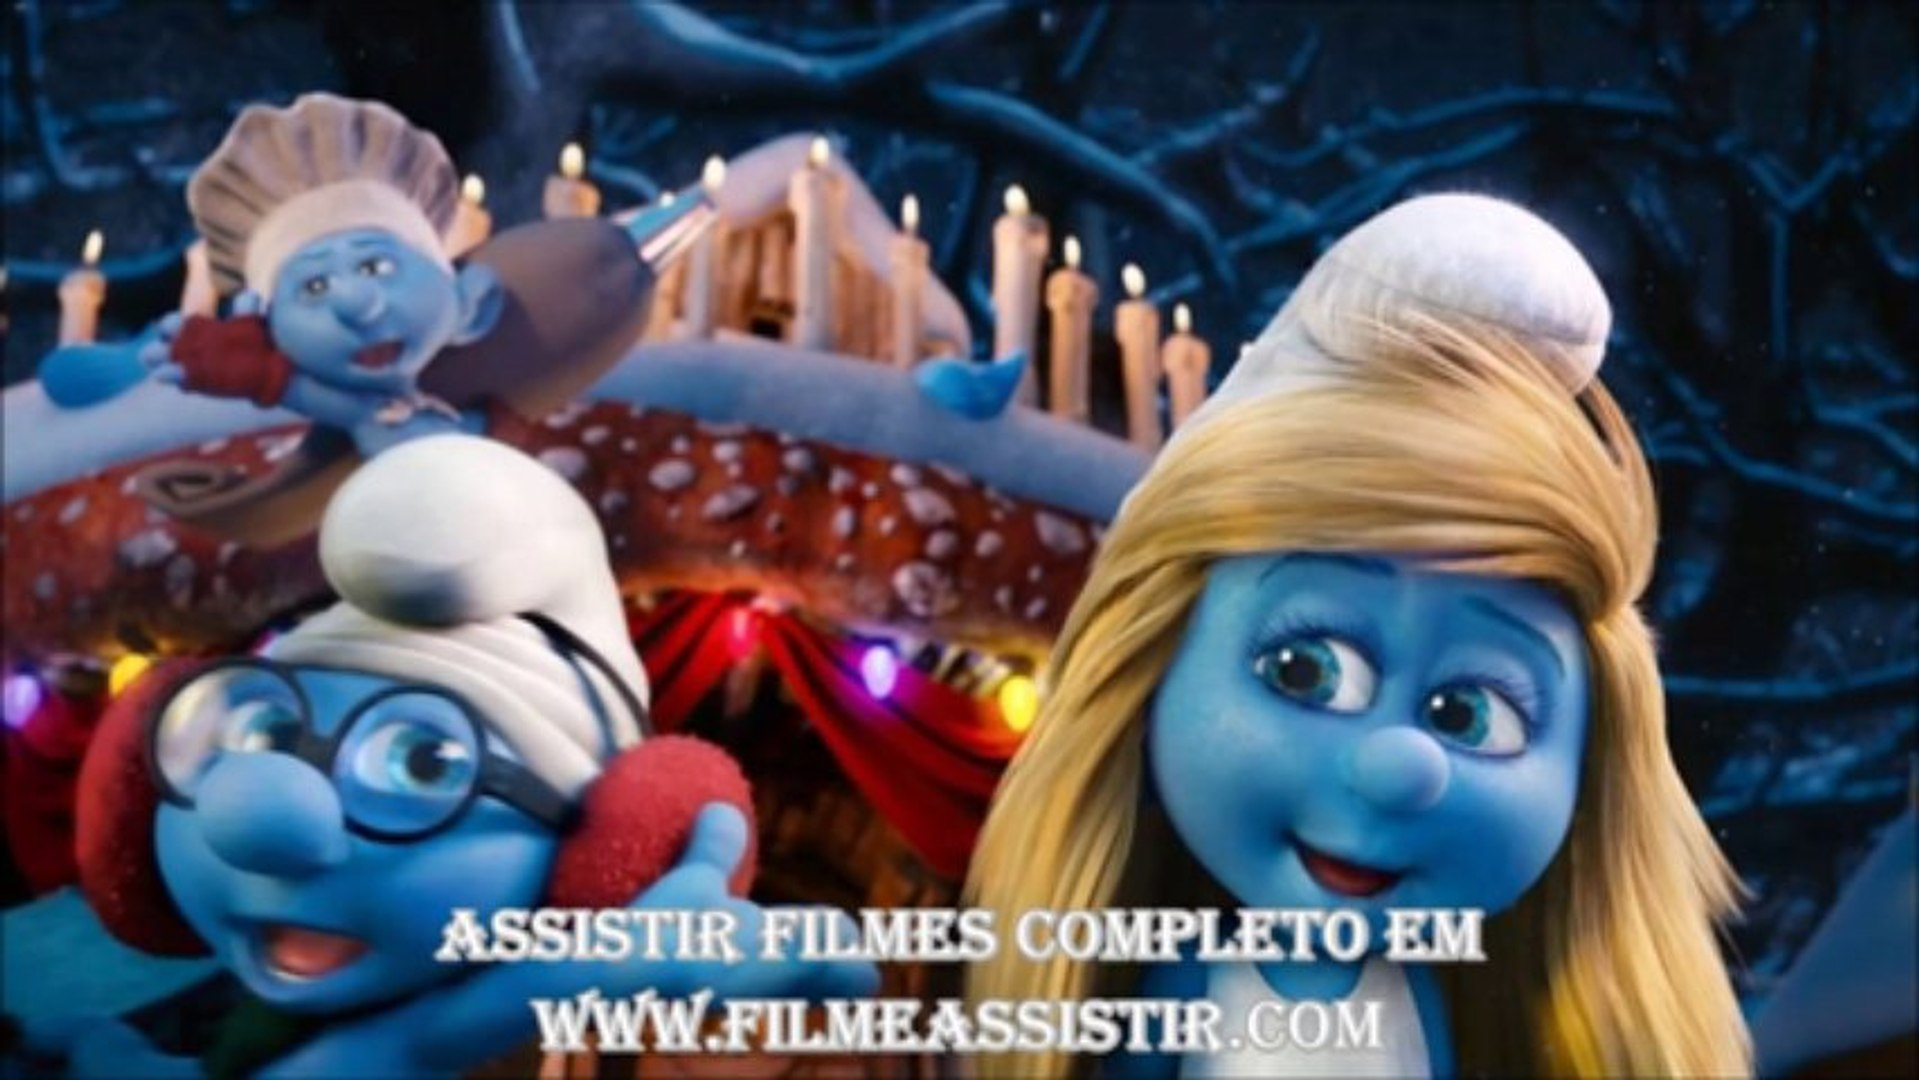 Os Smurfs 2 Assistir Filme Completo Dublado Online Em Portugues Video Dailymotion